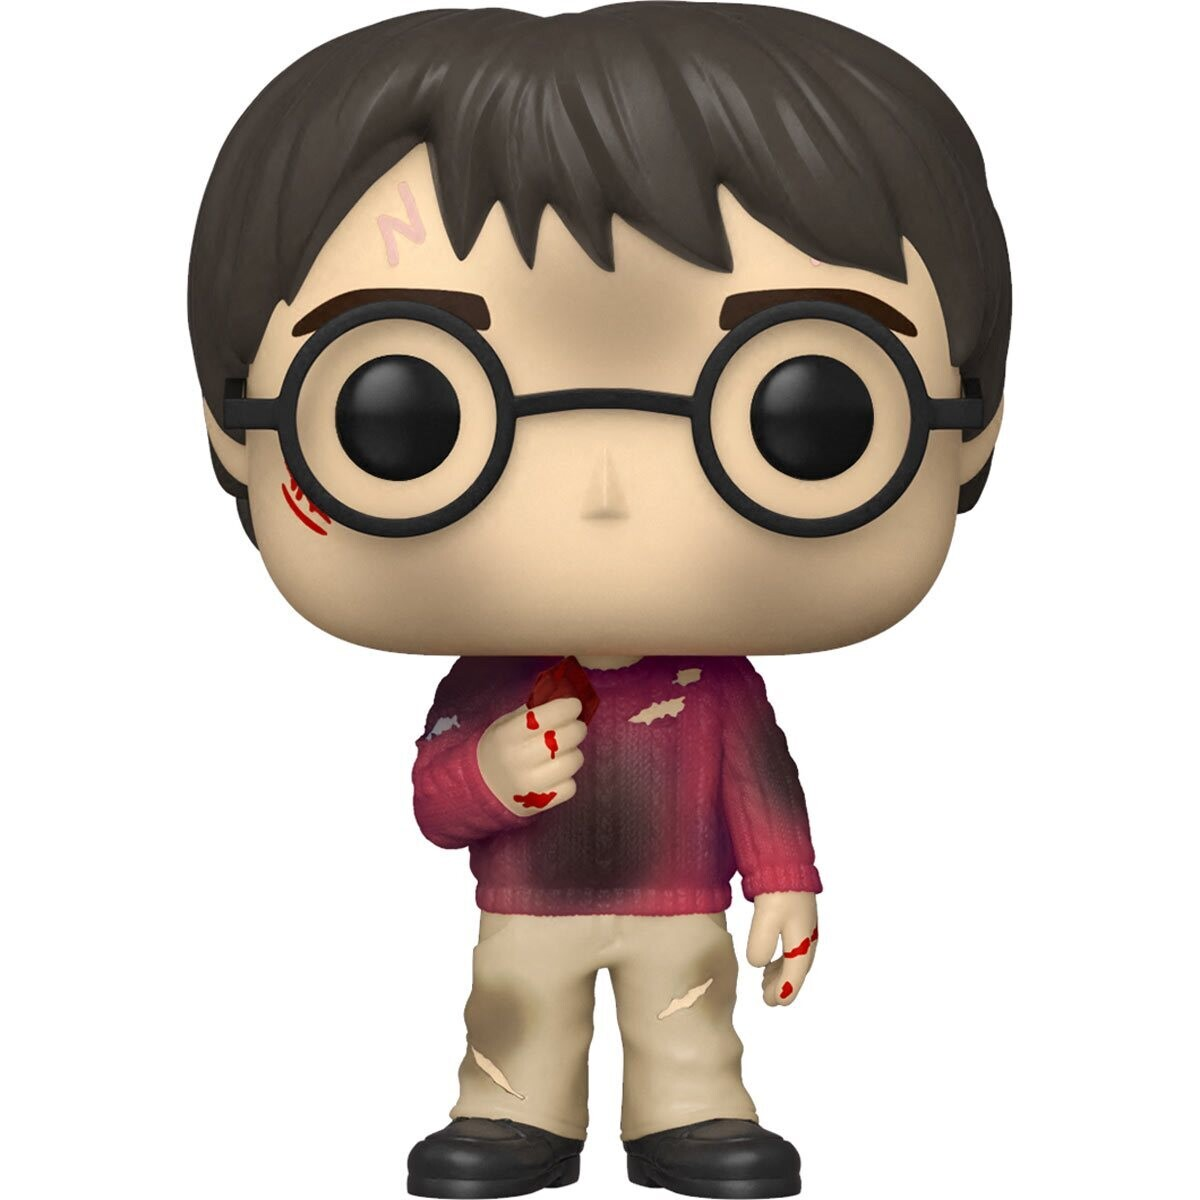 PRE-ORDER Funko Harry Potter and the Srocerer's Stone 20th Anniversary - Harry with the Stone Pop! Vinyl Figure